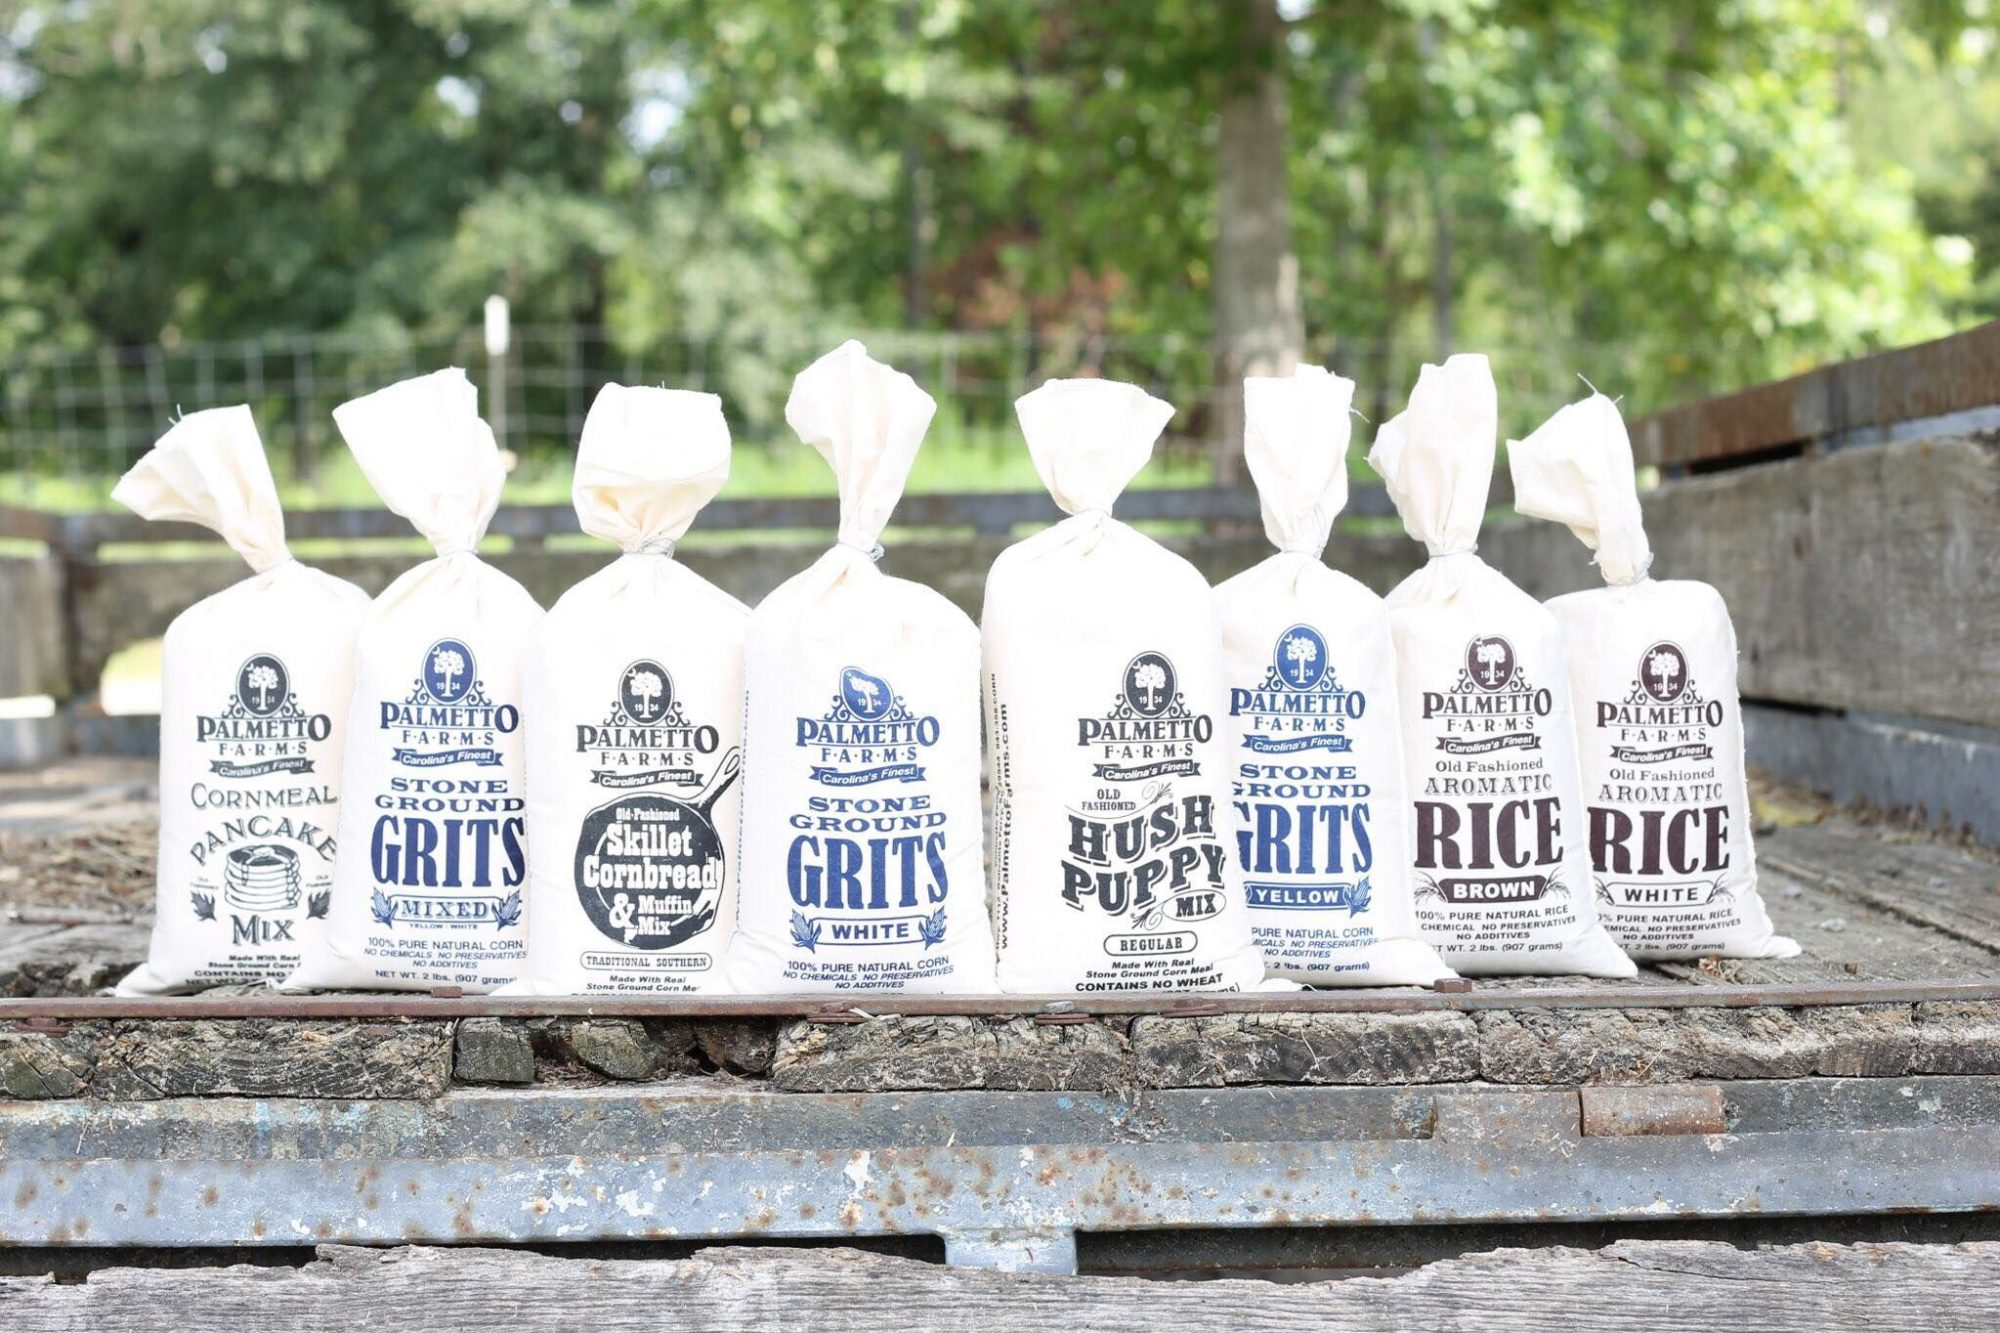 Palmetto Farms White Stone-Ground Grits